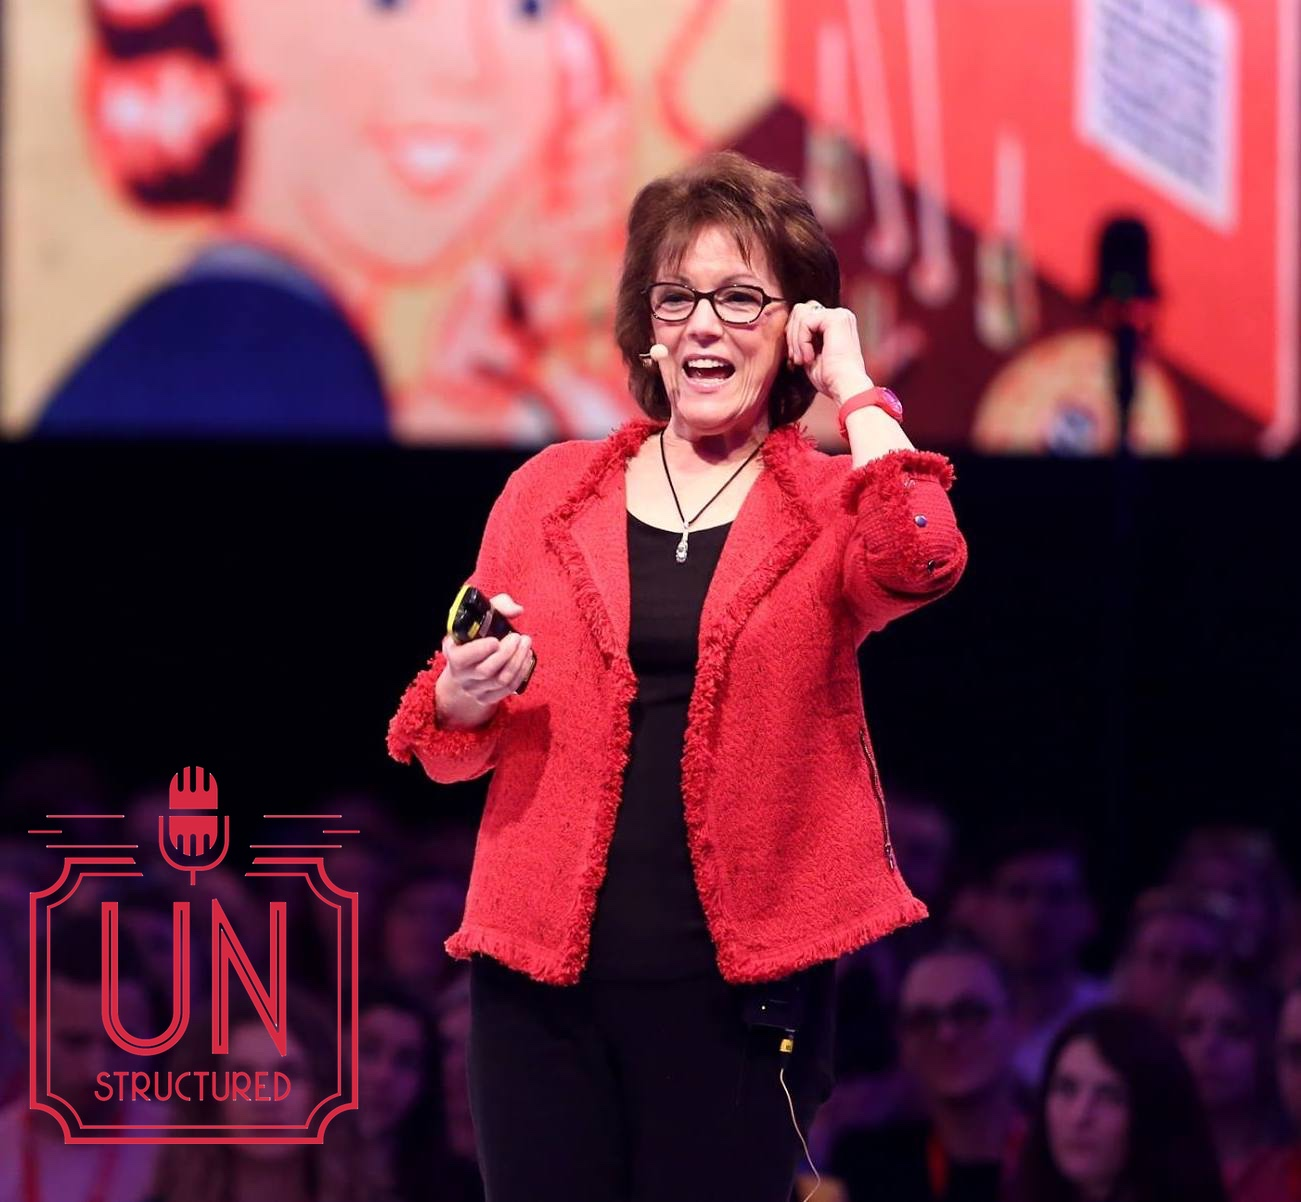 084 - Susan Bennett UnstructuredPod Unstructured interviews - Dynamic Informal Conversations with unique wide-ranging and well-researched interviews hosted by Eric Hunley